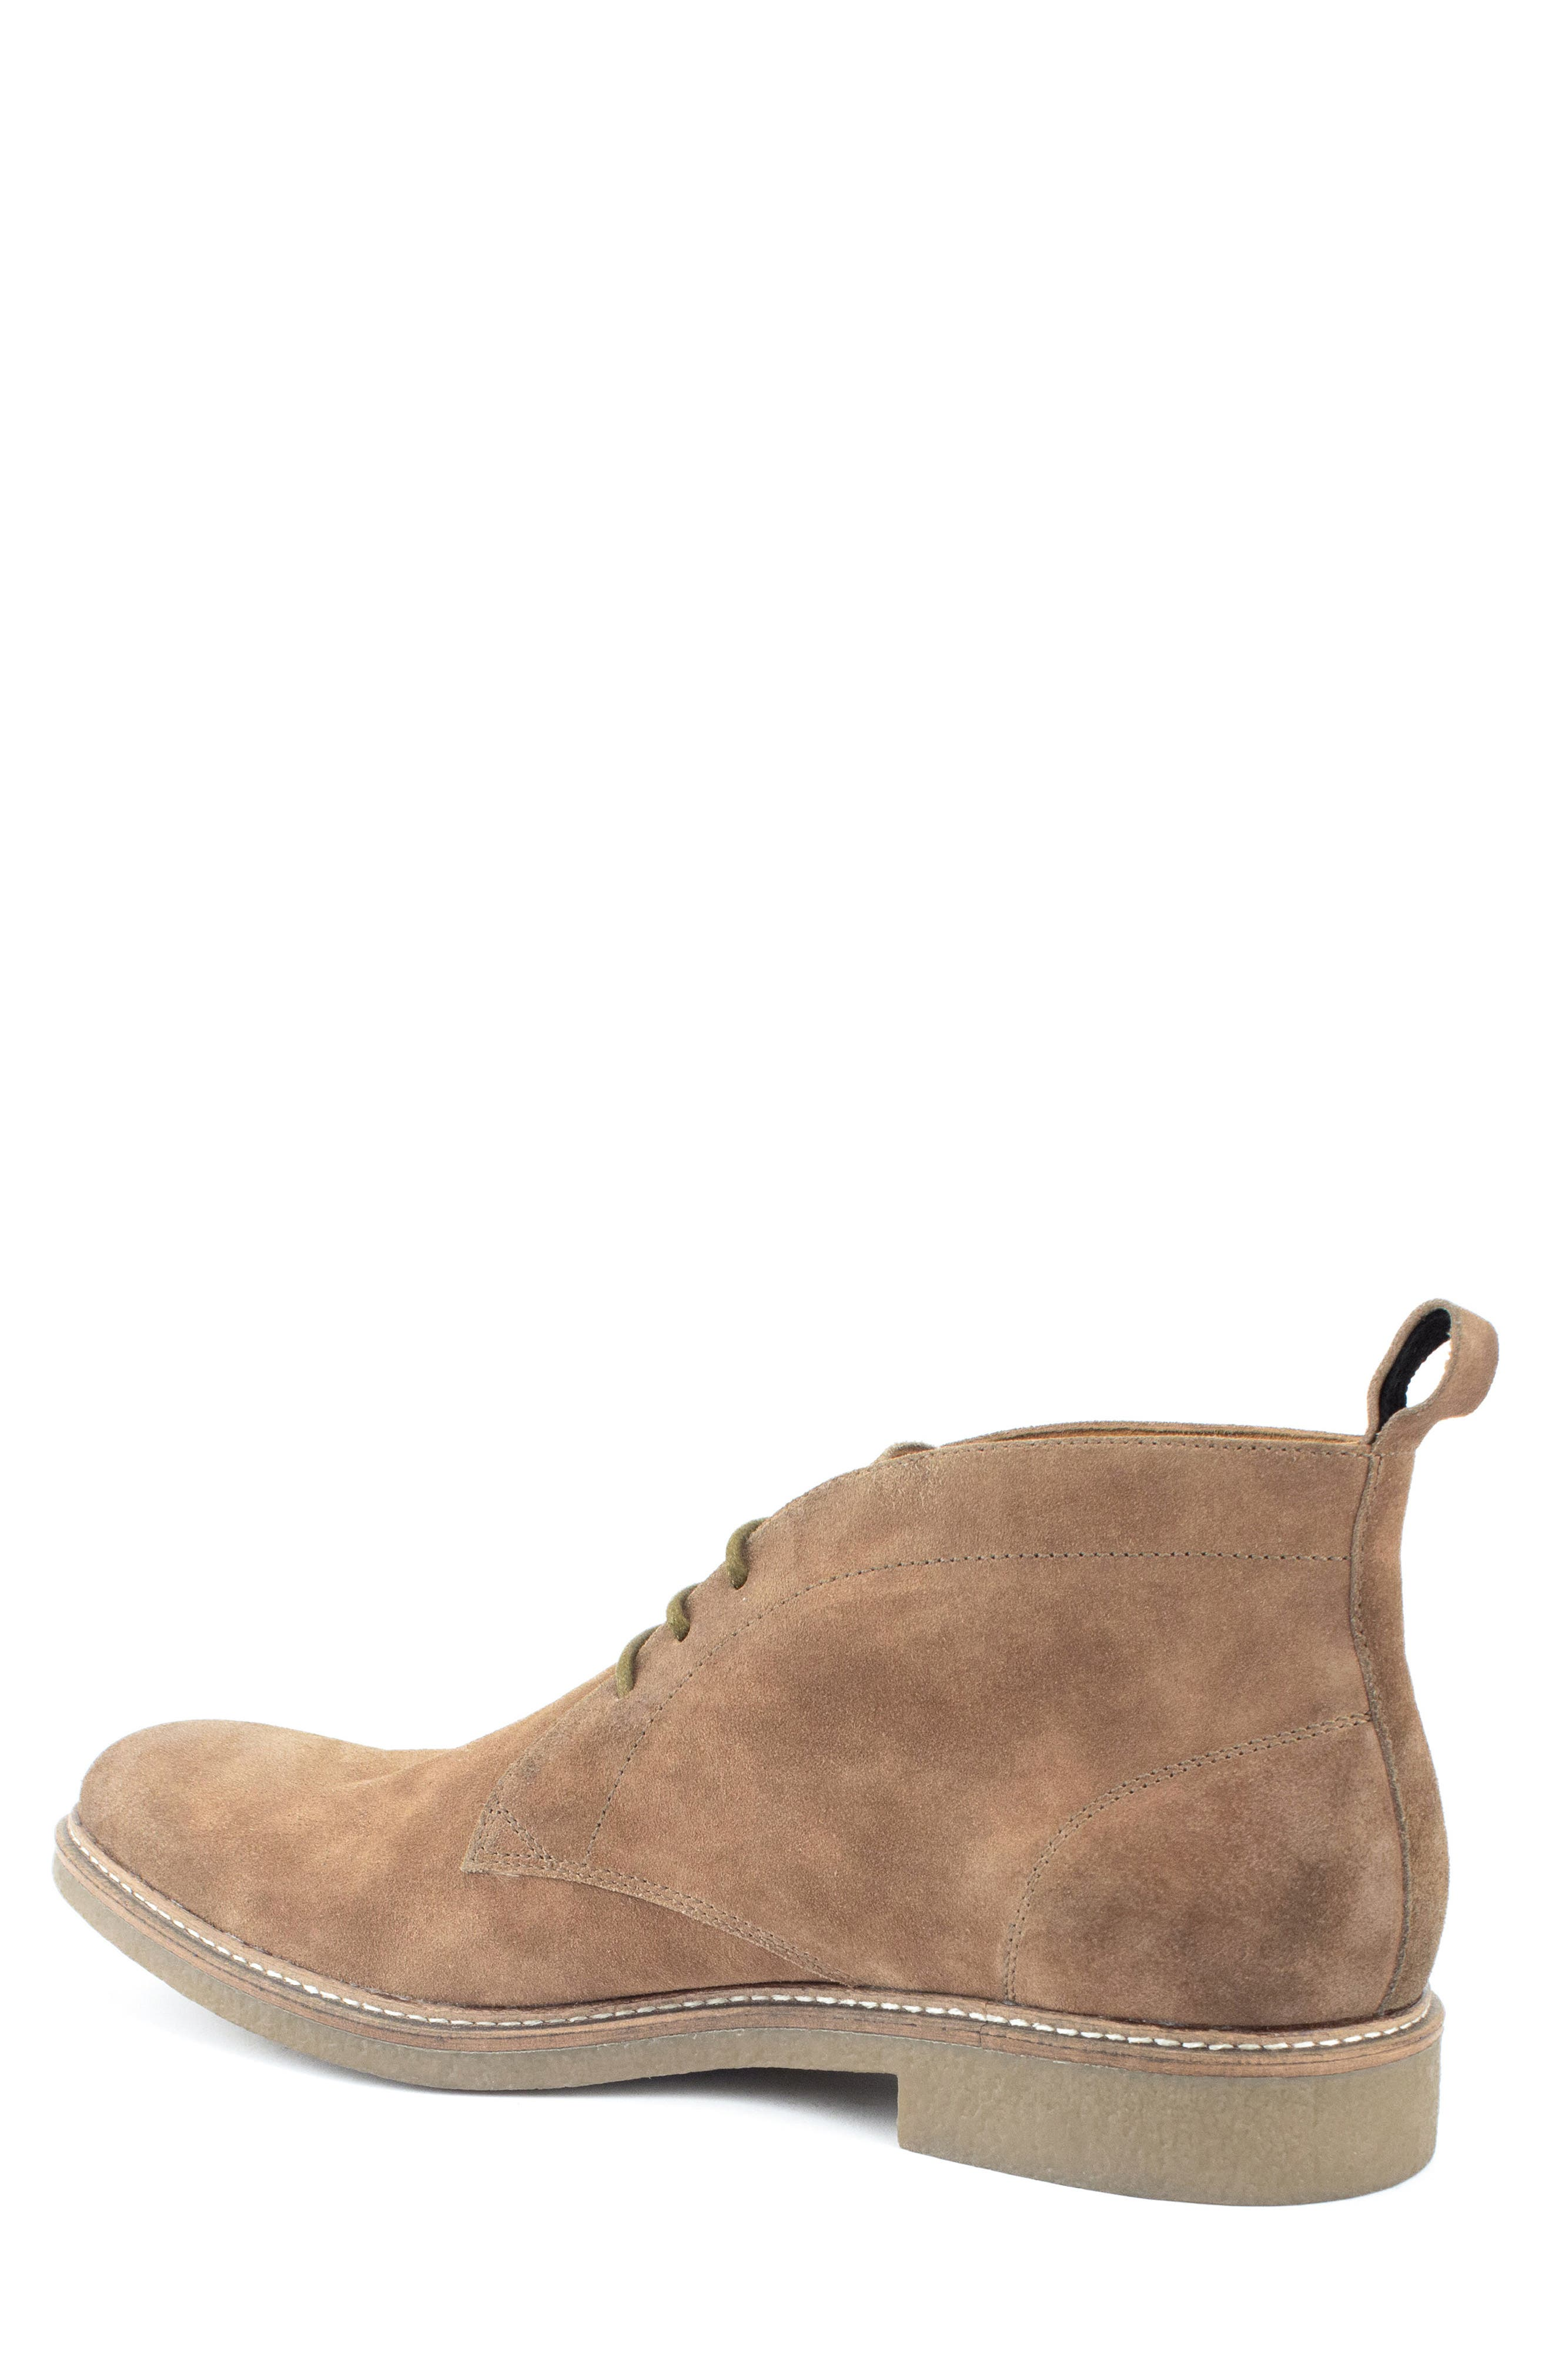 Albert Chukka Boot,                             Alternate thumbnail 2, color,                             TAN SUEDE